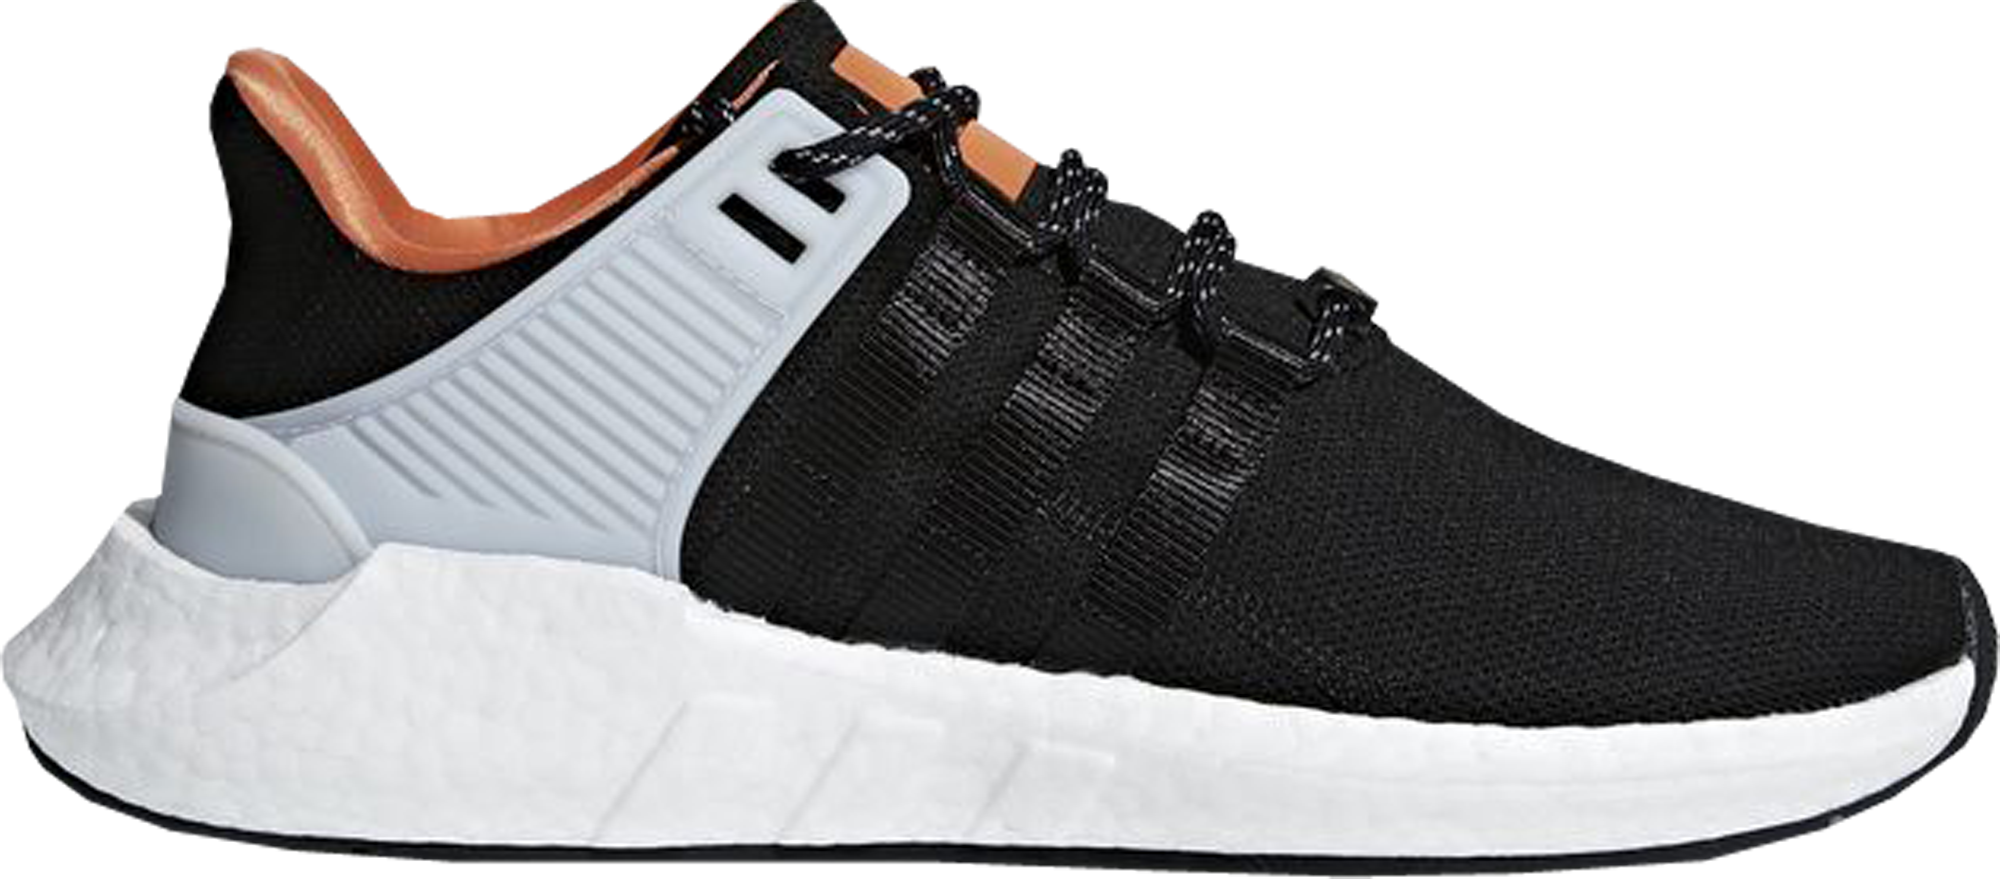 adidas EQT Support 93/17 Welding Pack Core Black